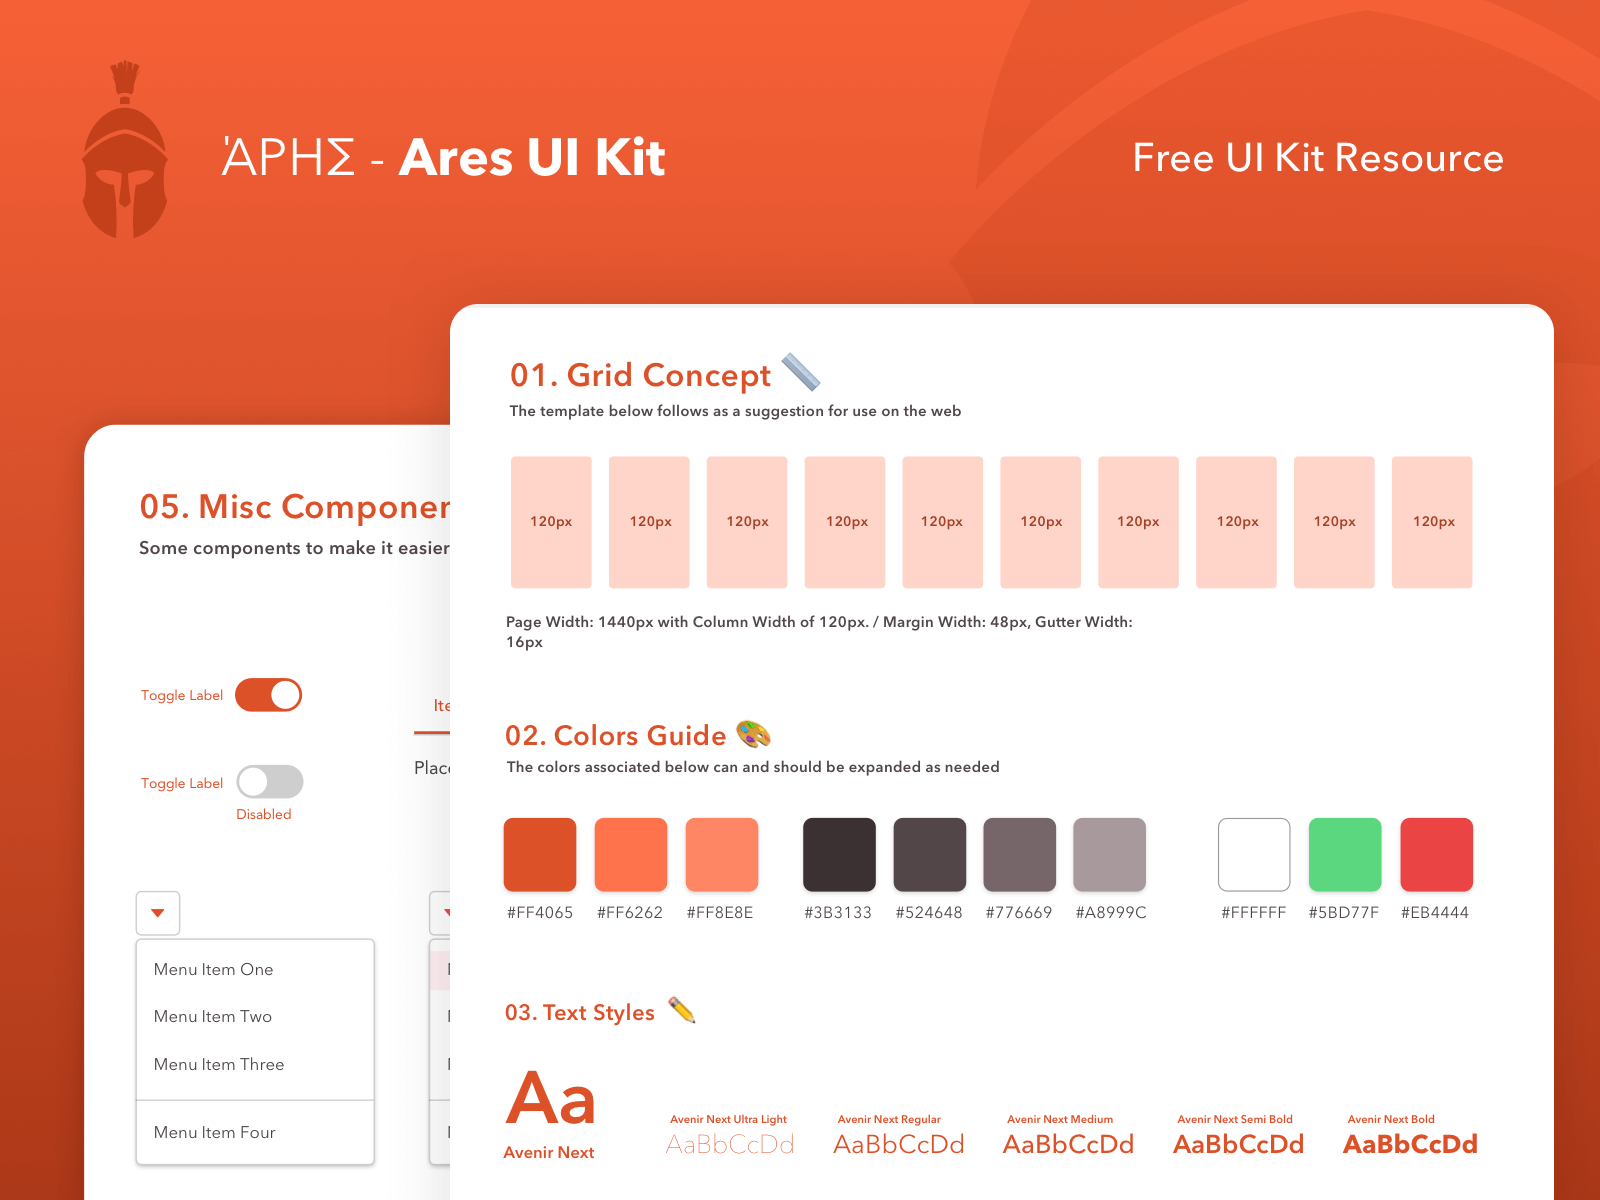 Ares Ui Kit - Free Resource cover image